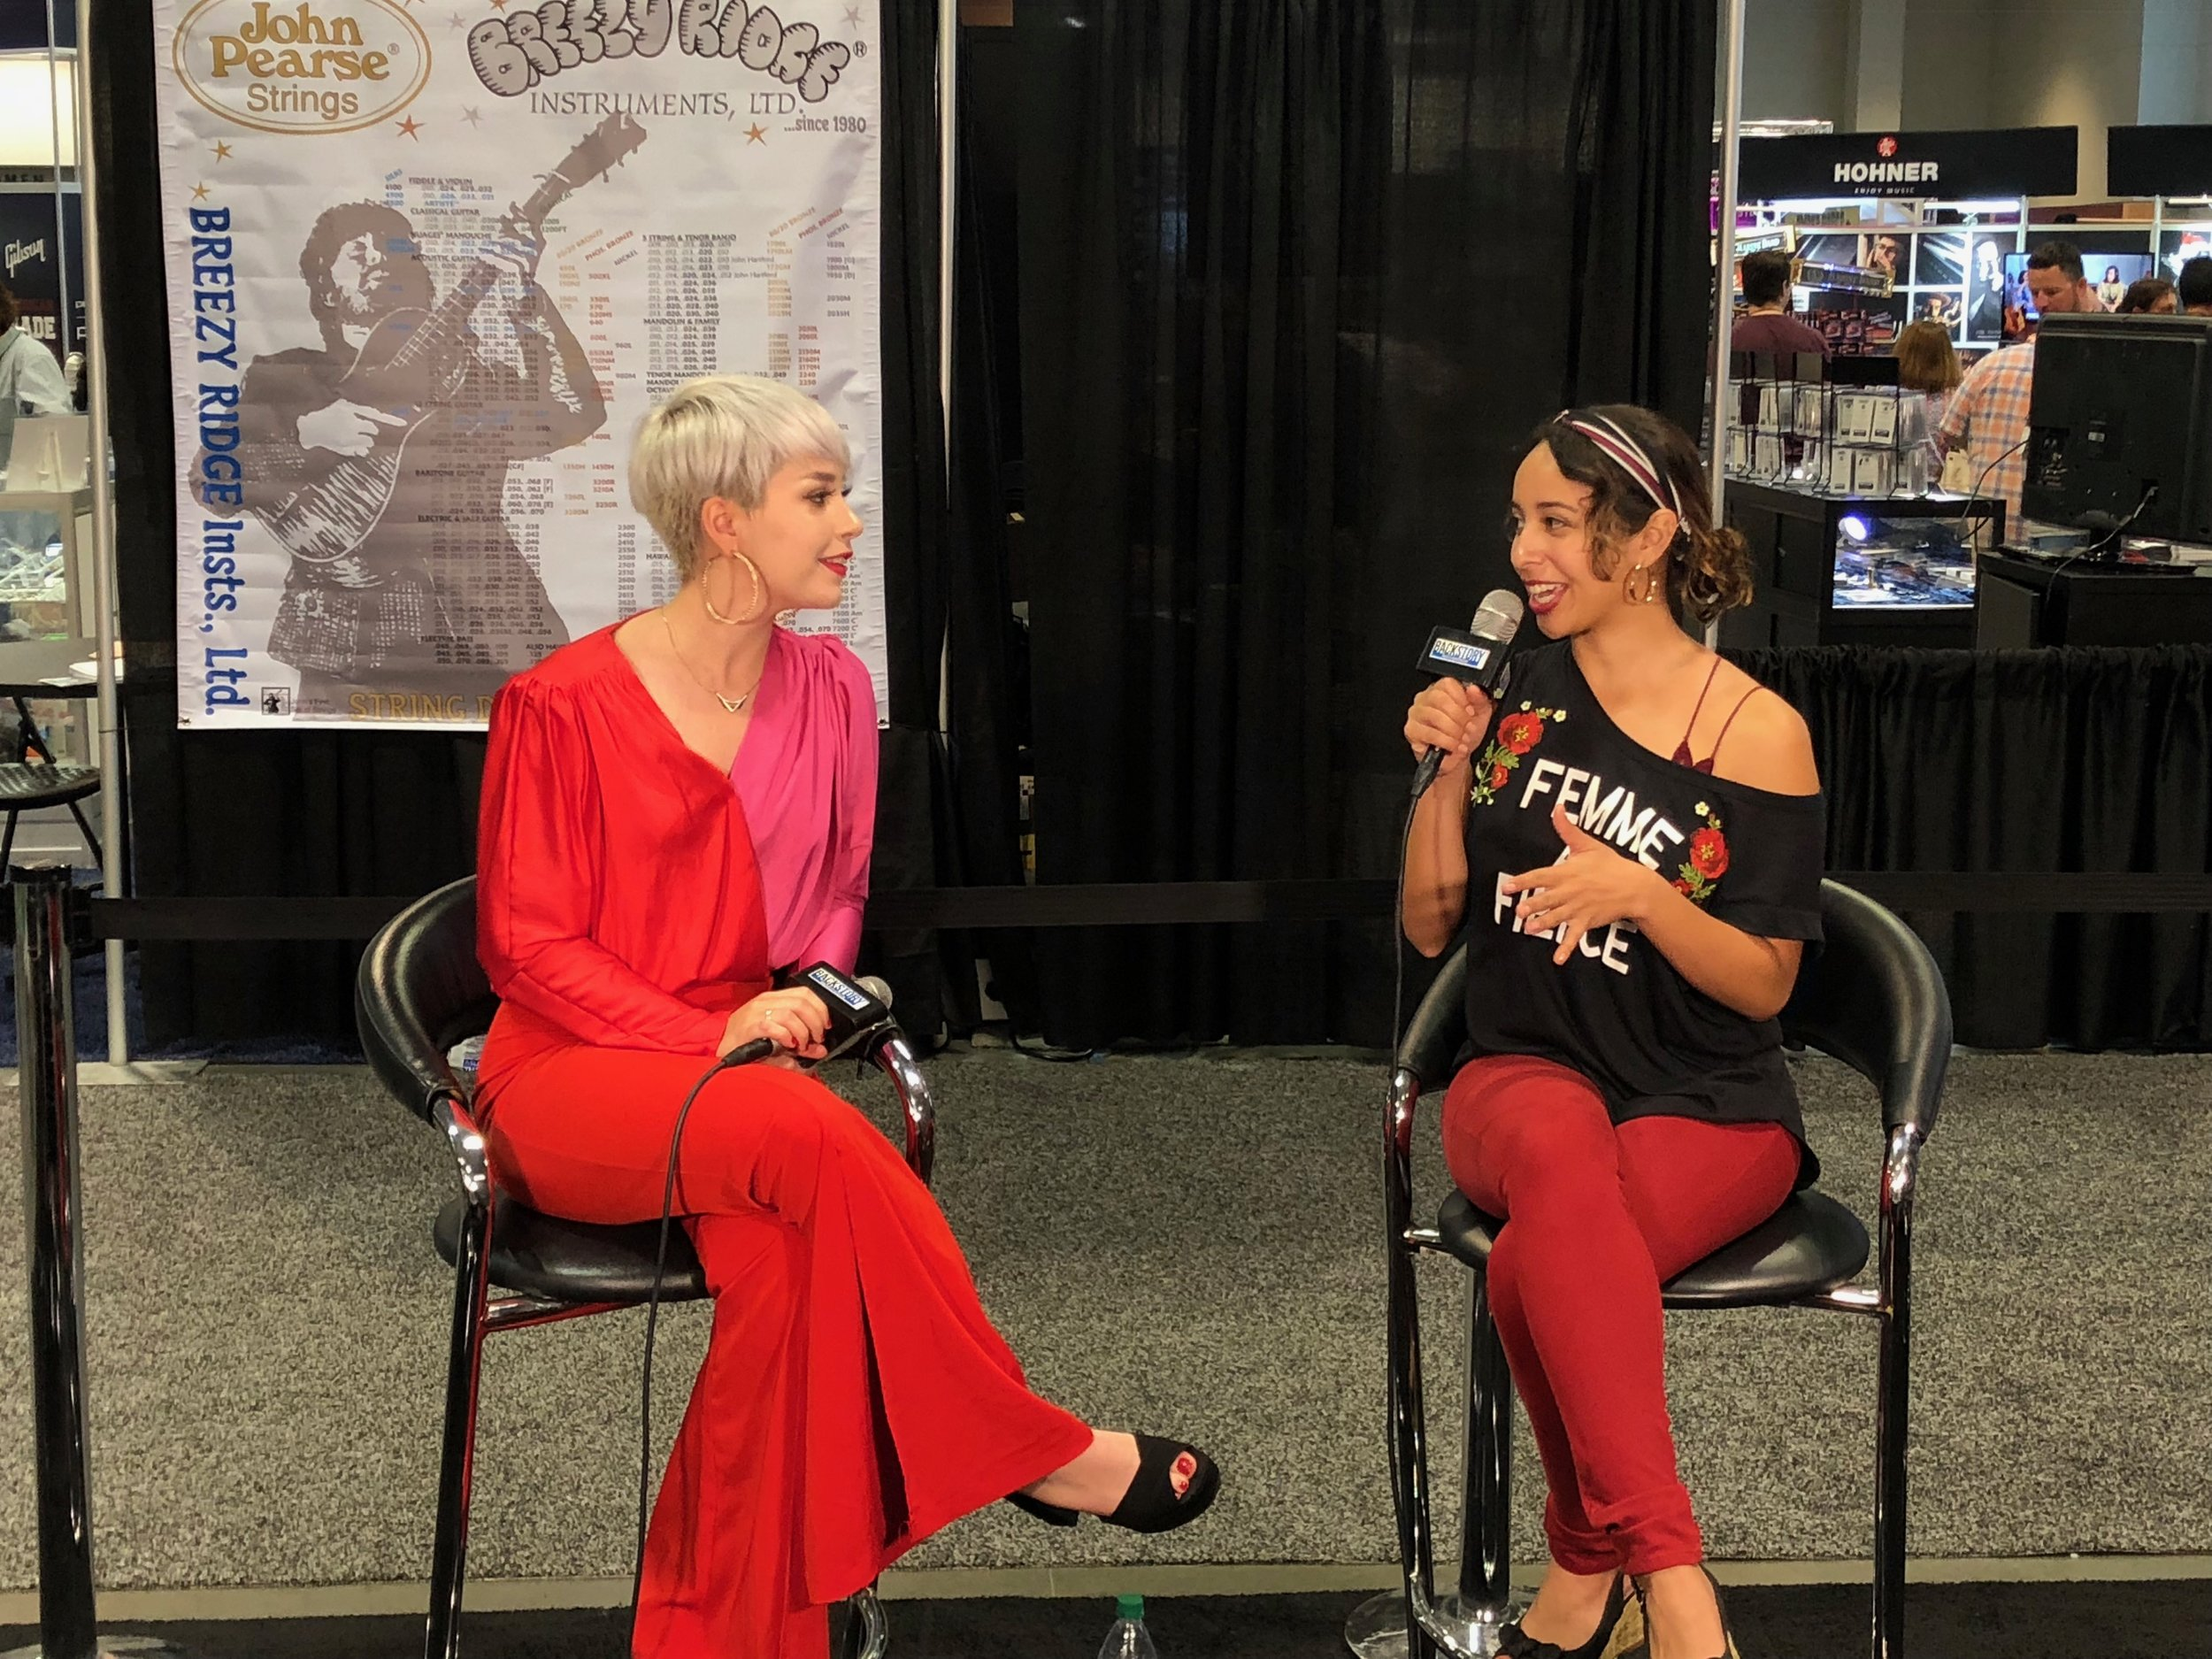 American Songwriter Magazine - Karina interviews with the prestigious magazine to talk about her upcoming projects, and performs a live song at NAMM 2018.